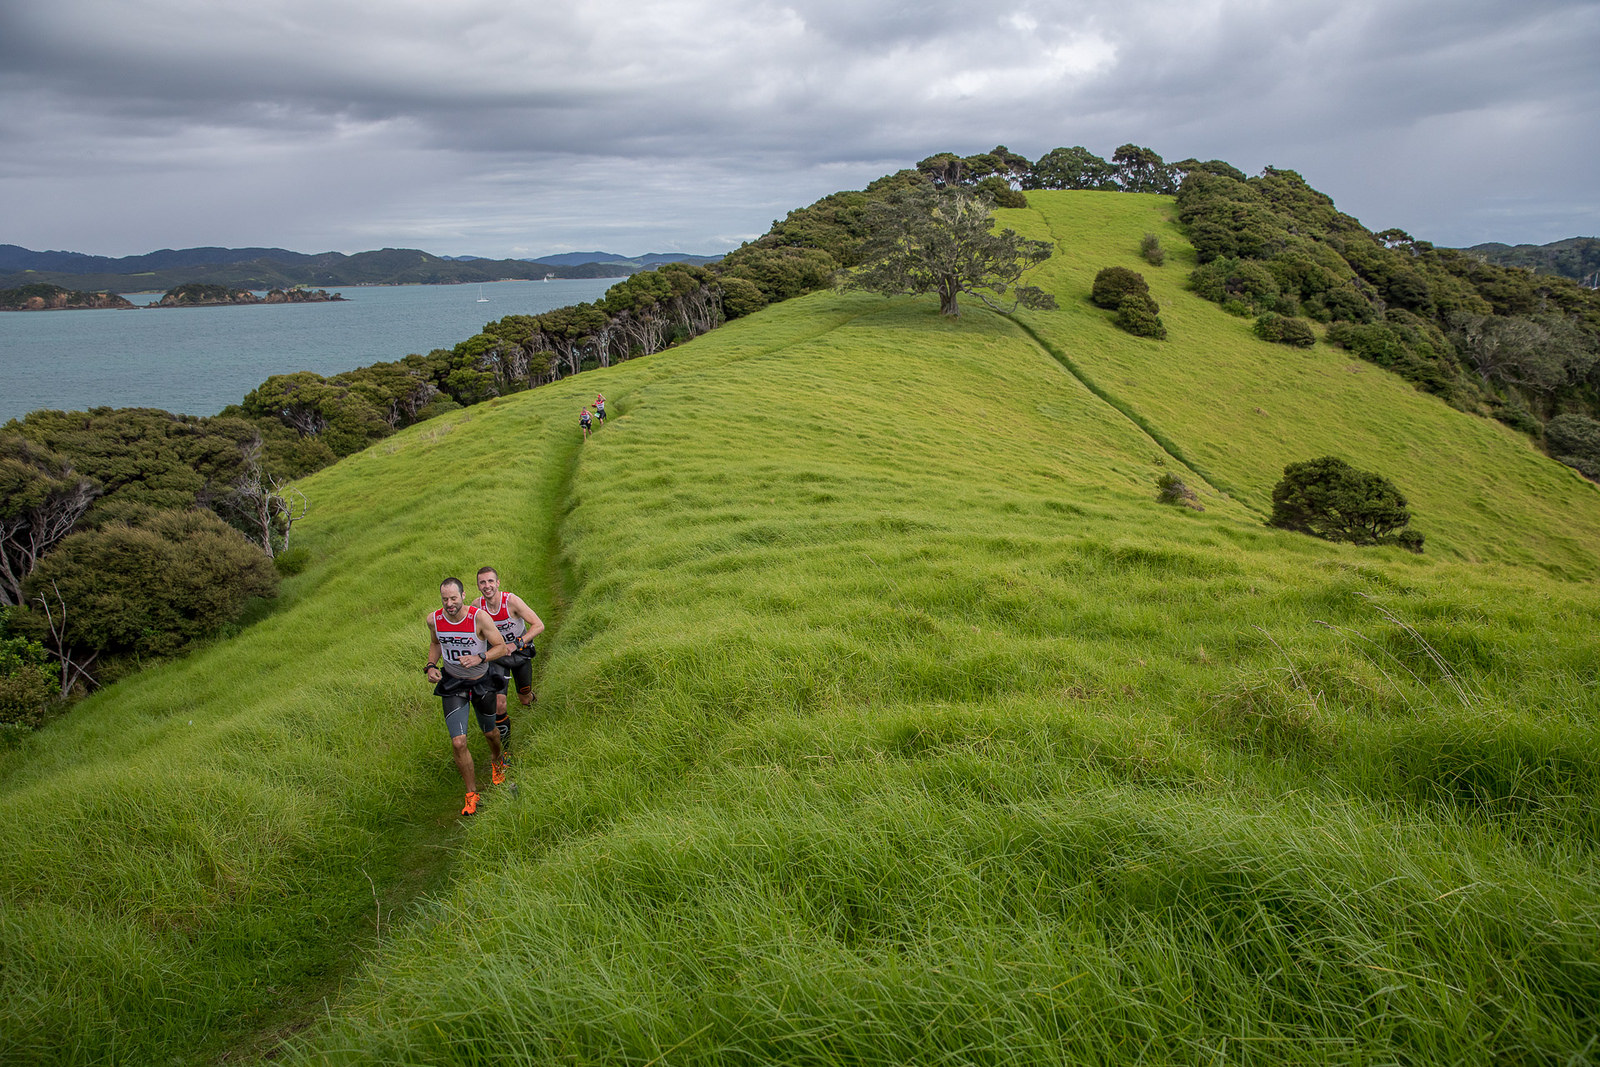 Register for the Breca Bay of Islands Sprint 2019 - 13th April 2019, 17.2km swimrun. Sign up now to enjoy our early-bird rates!Early-bird 1: NZ$480 per teamEarly-bird 2: NZ$495 per teamEarly-bird 3: NZ$505 per teamLate registration: NZ$520 per teamEntry fees are for a team of two+3.75% Trumin processing fee for all tiers; includes GST